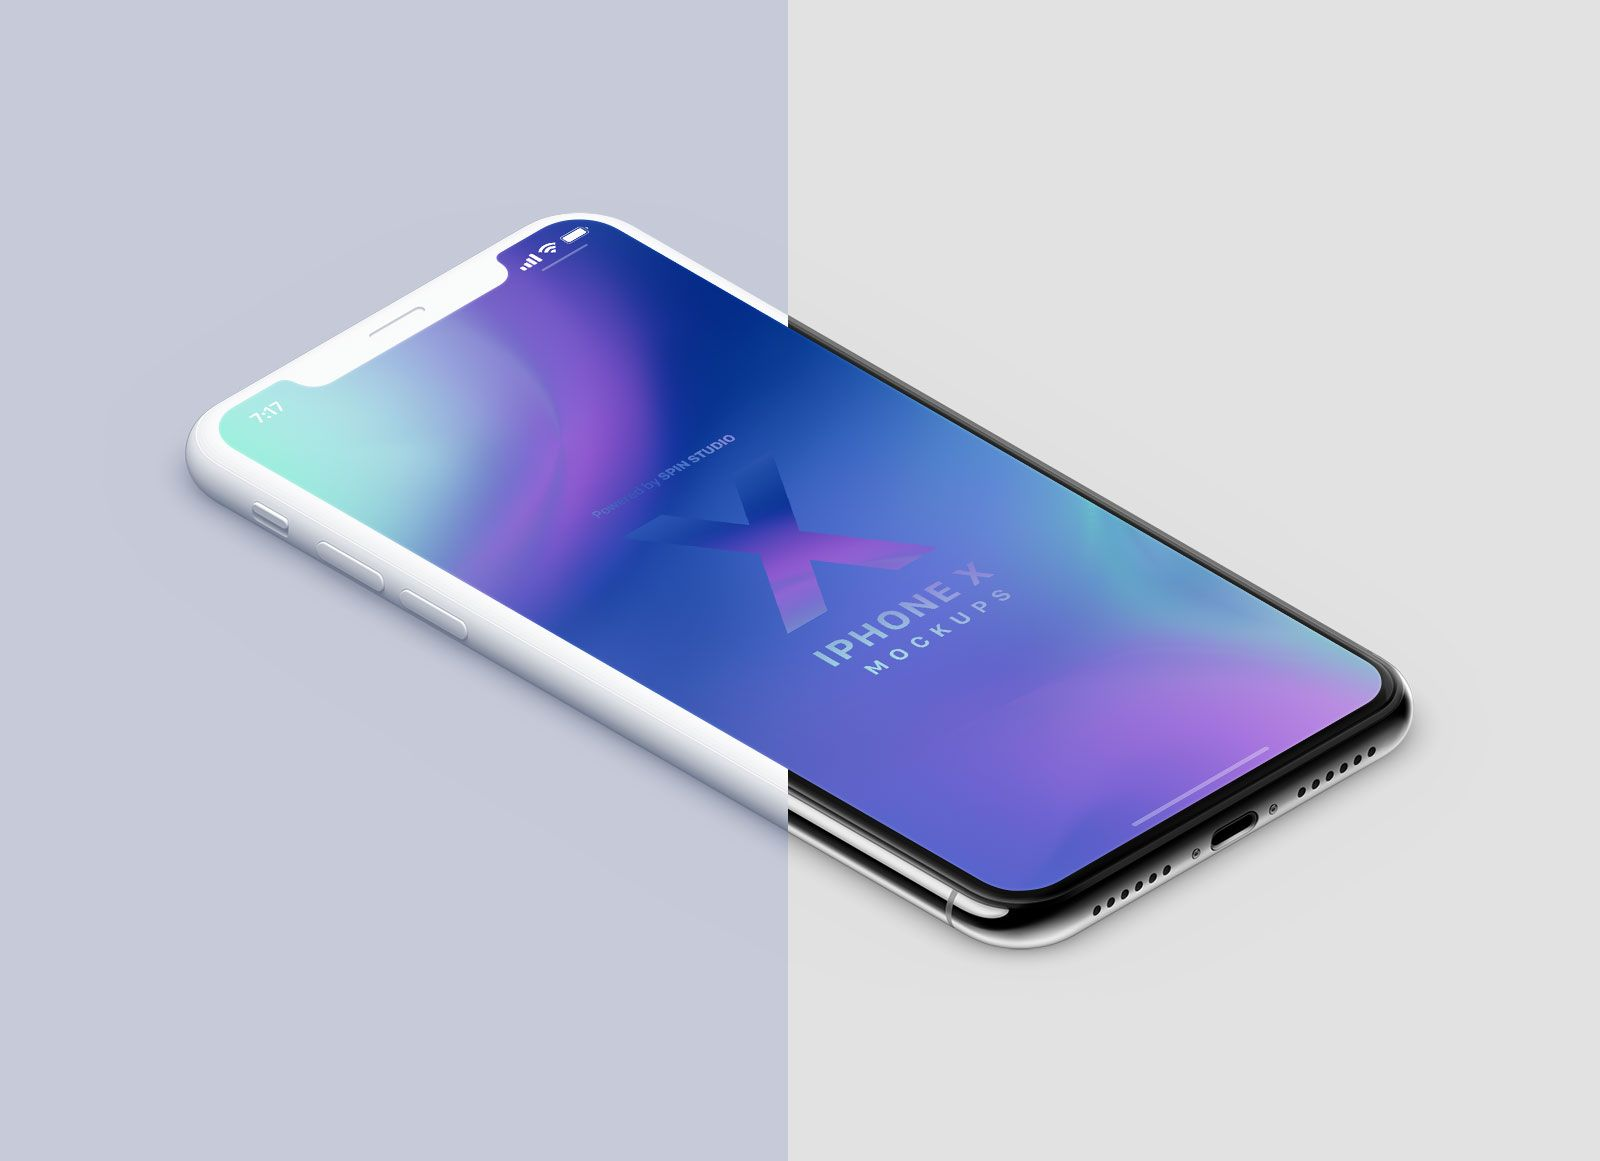 Download Free Isometric Clay Realistic Iphone X Mockups Freebies Display Free Graphic Design Iphone Iphone X Isometric Mobile Mockup Prese Mockup Psd Iphone Isometric